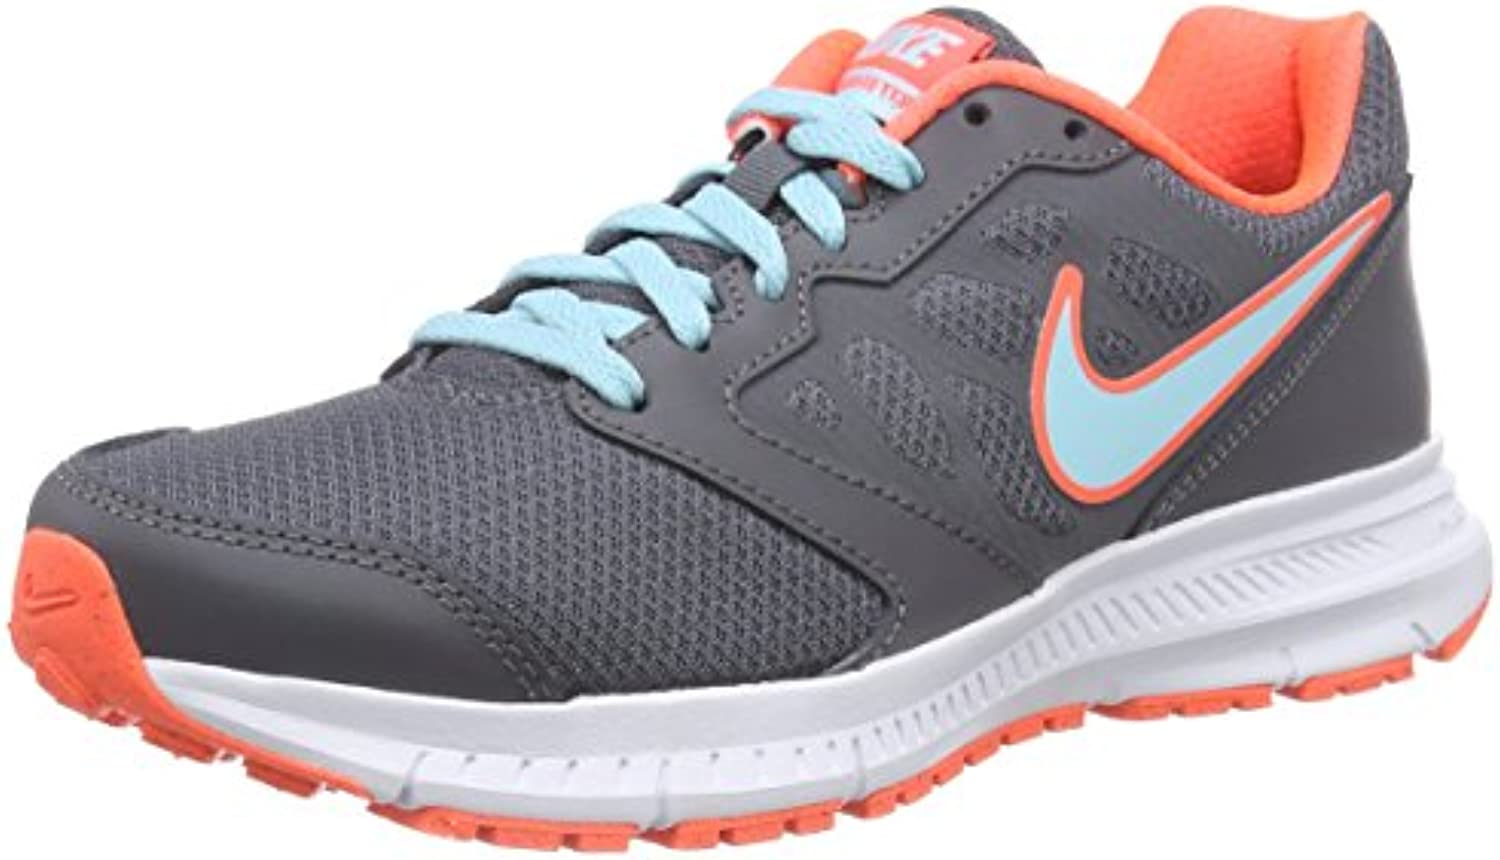 Men's/Women's NIKE Downshifter 6, Women's Running Shoes New Attractive and durable New Shoes style As of the latest model c238cb